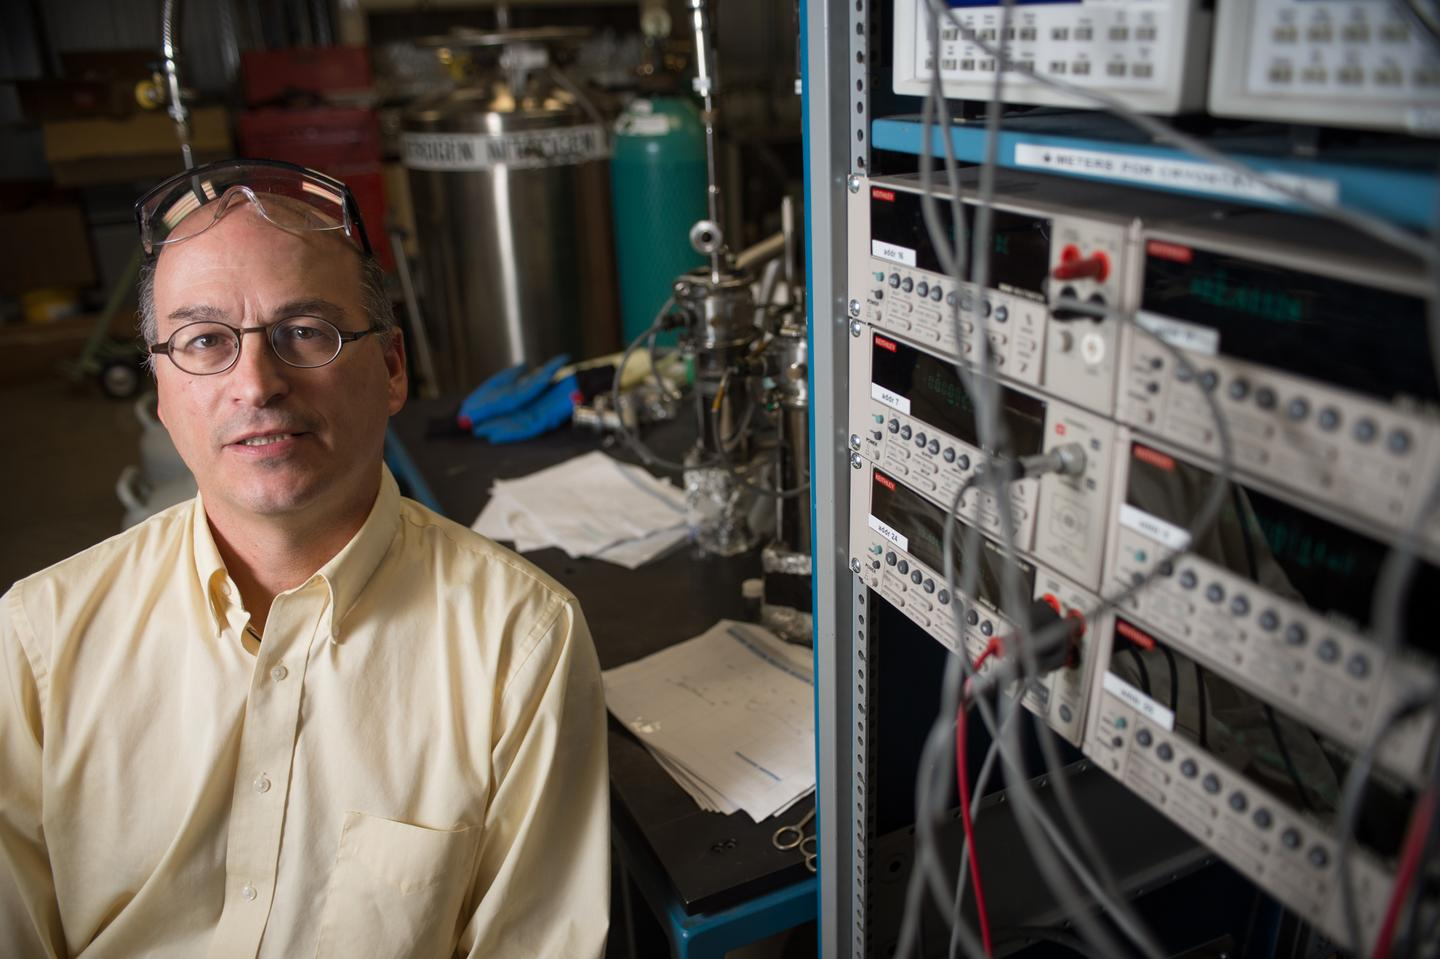 The material was developed by a team from Michigan State University, led by Prof. Donald Morelli (pictured)